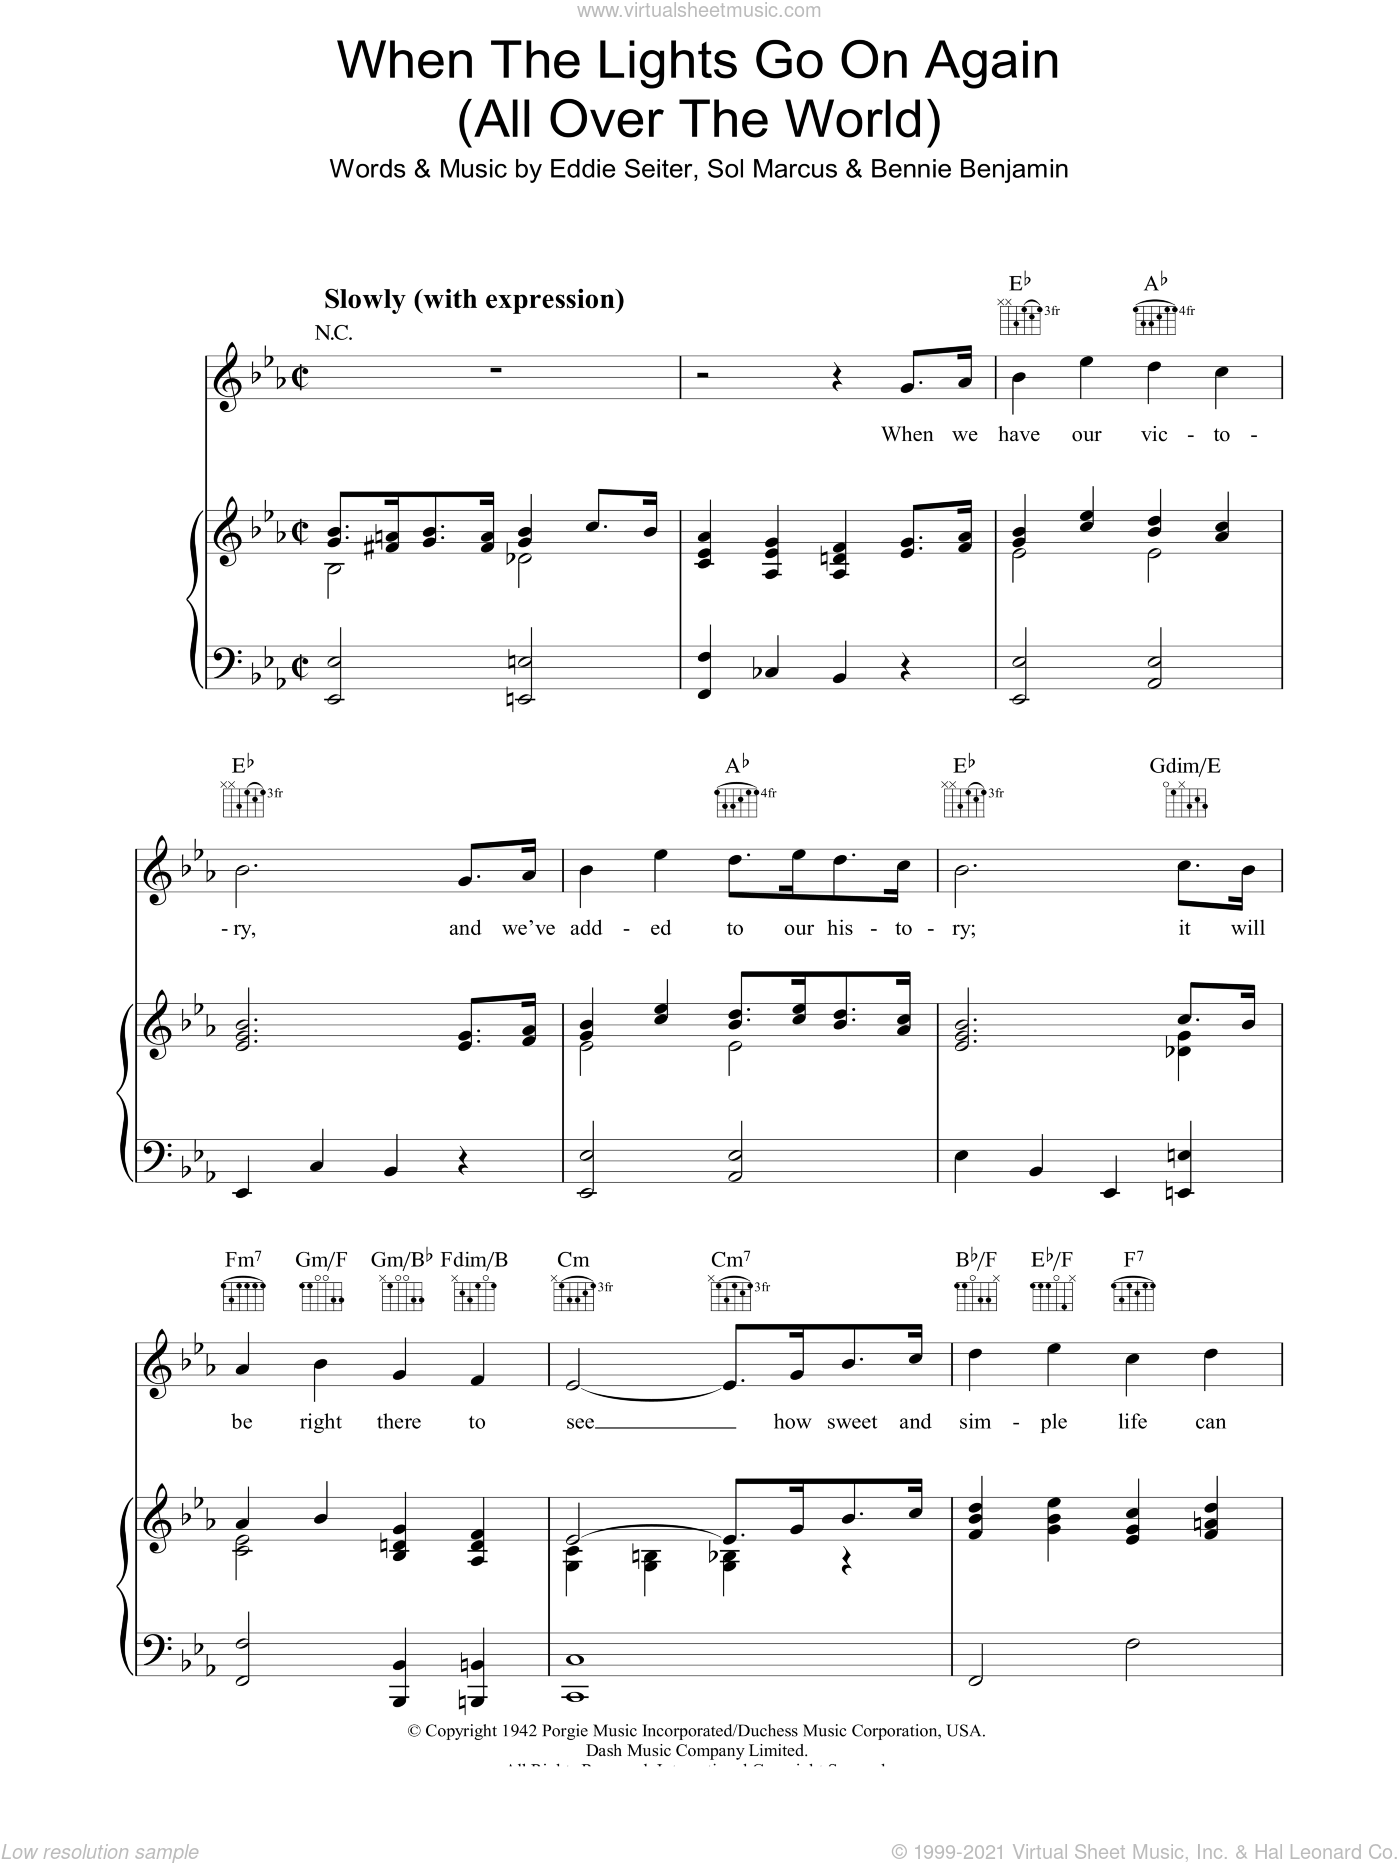 When The Lights Go On Again (All Over The World) sheet music for voice, piano or guitar by Sol Marcus, Bennie Benjamin and Eddie Seiler. Score Image Preview.